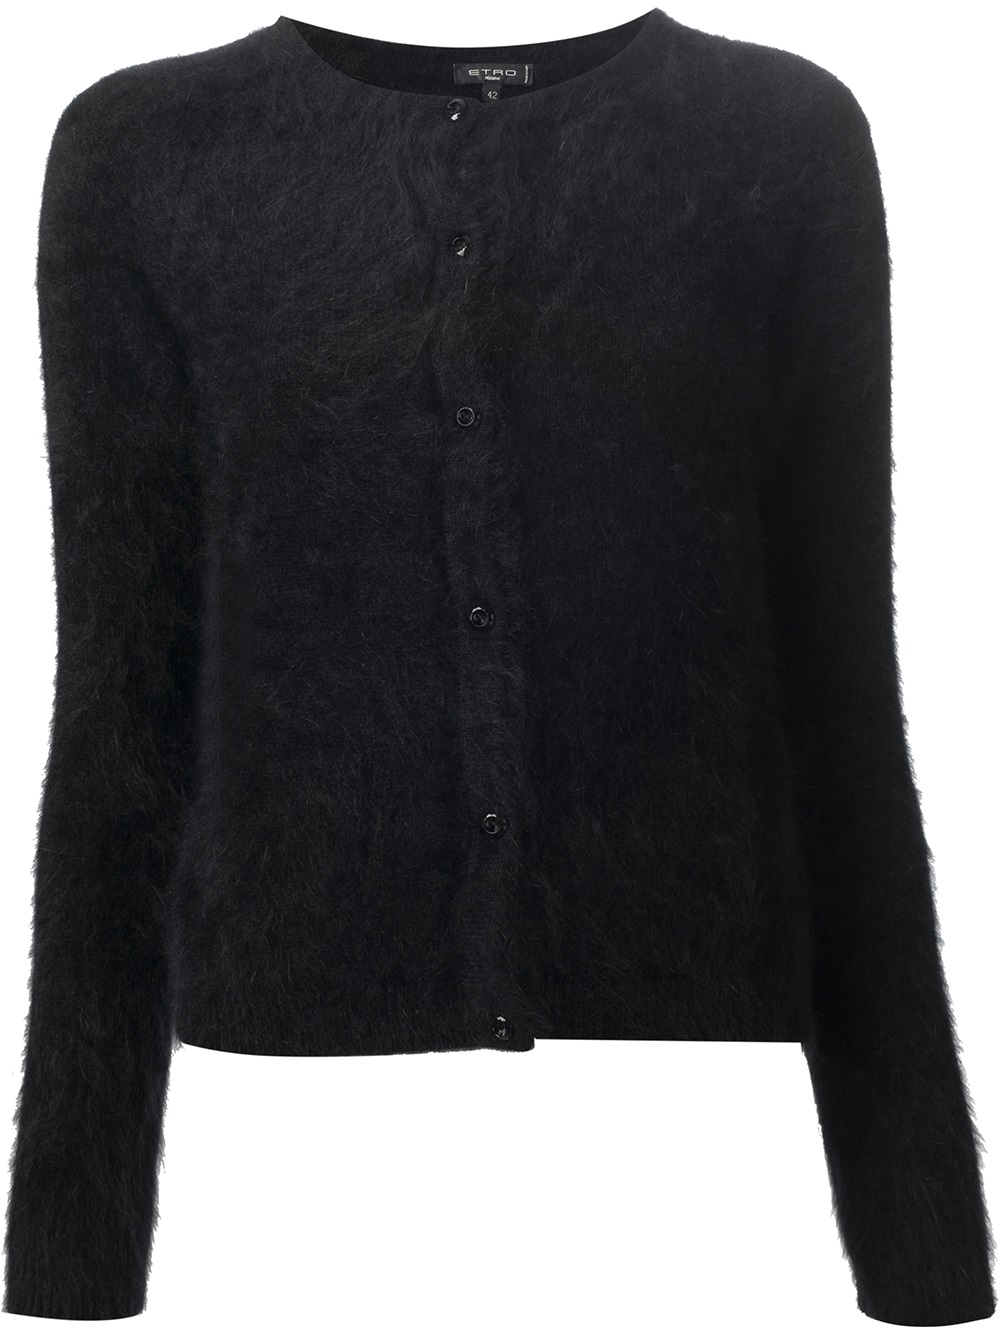 Etro Angora Cardigan in Black | Lyst